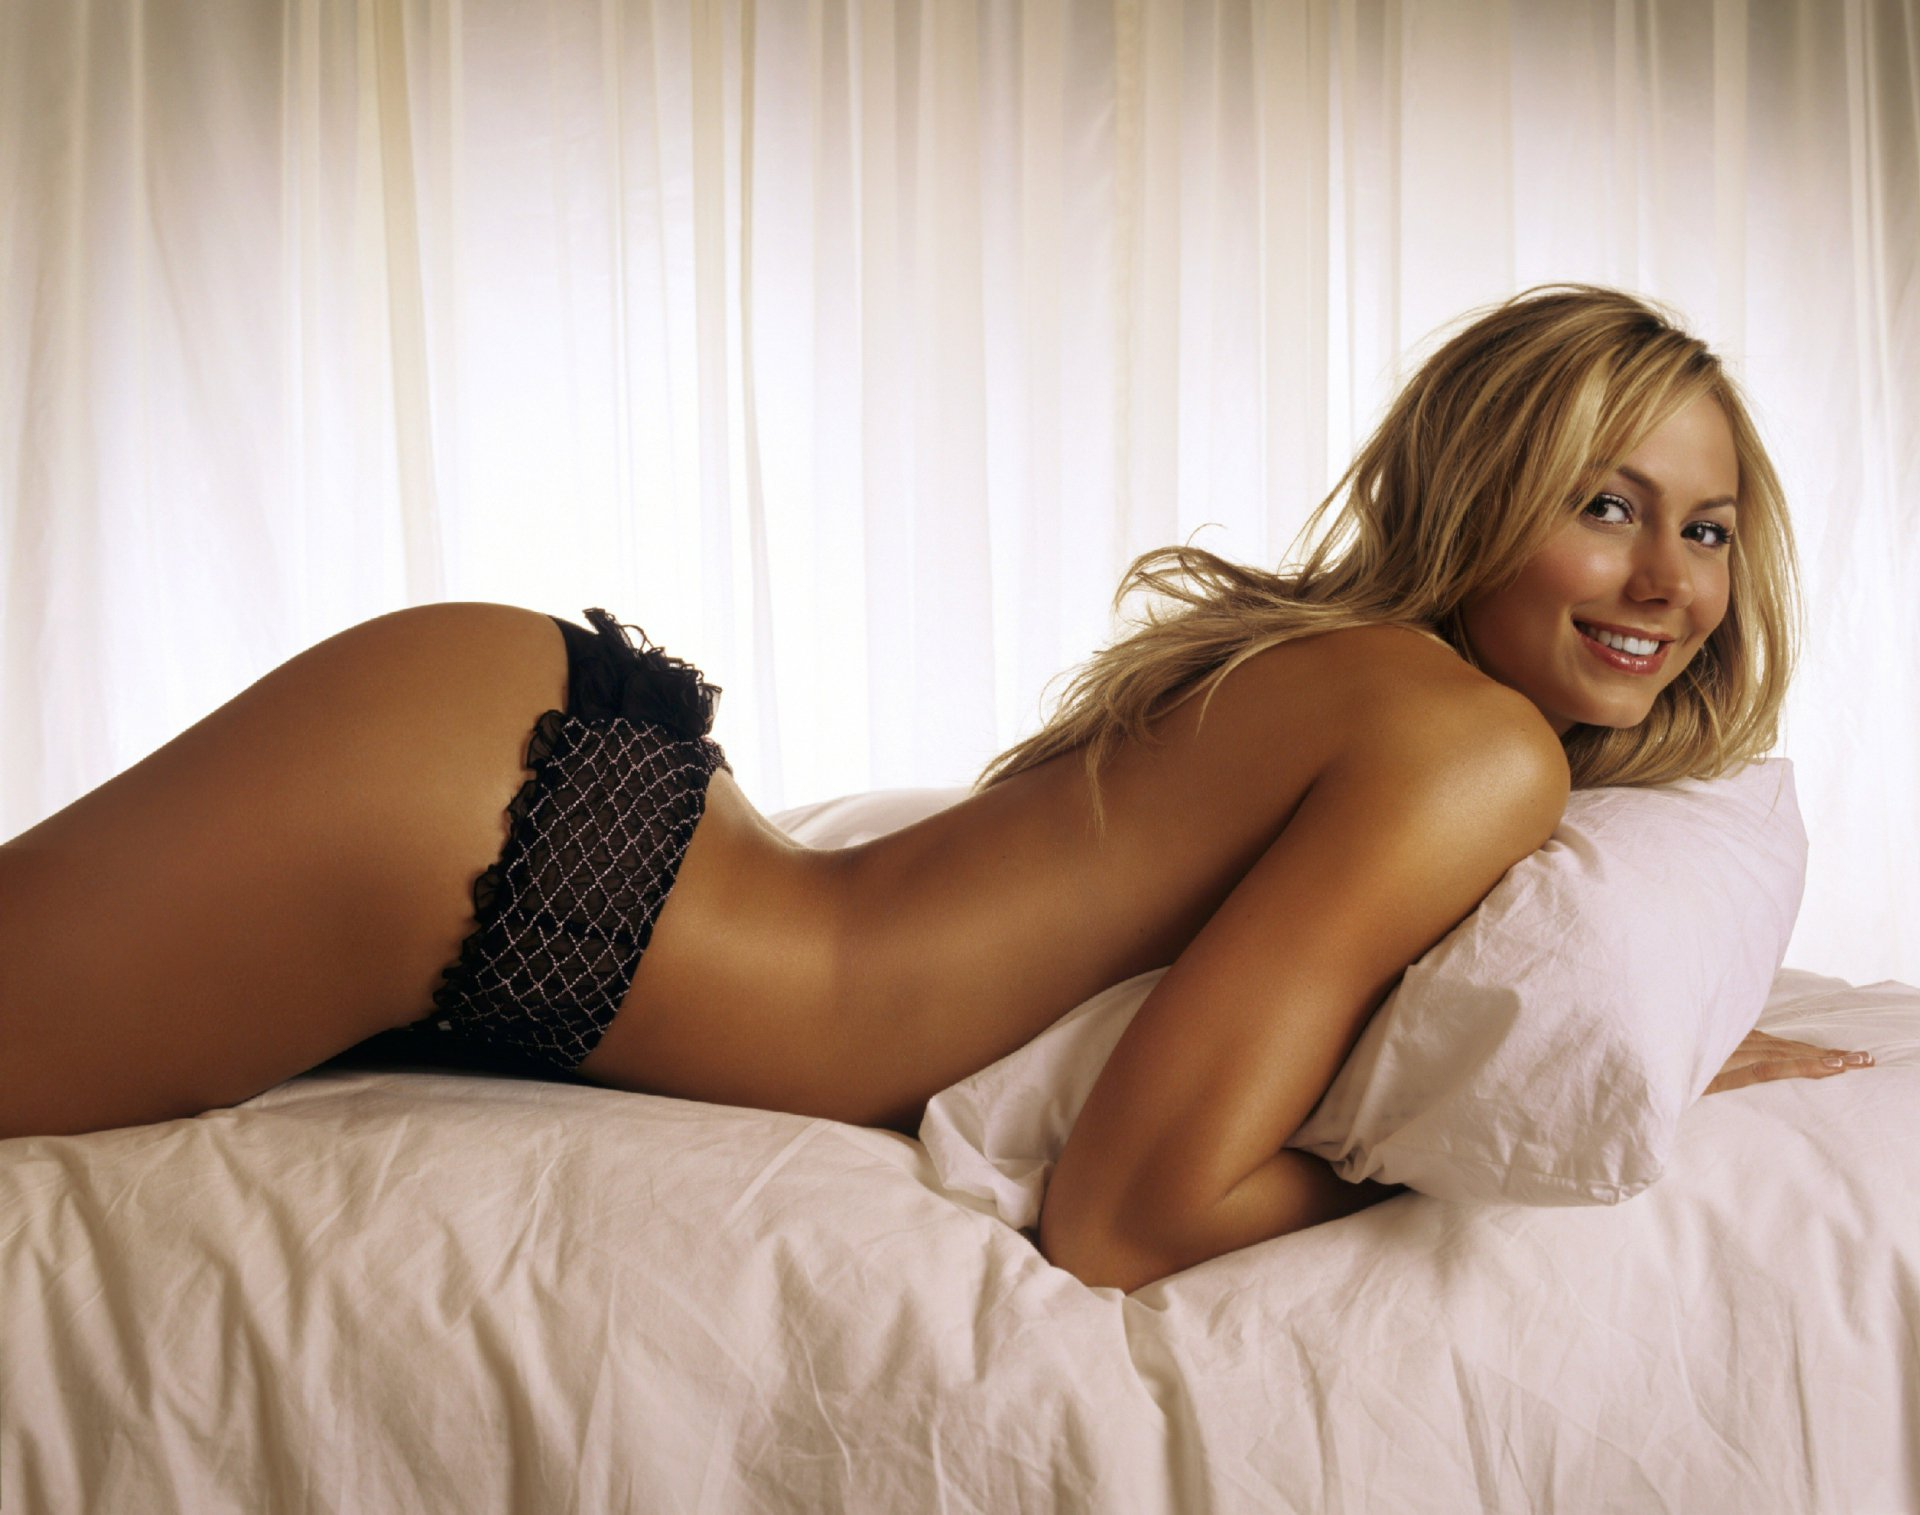 Stacy keibler sexy pics